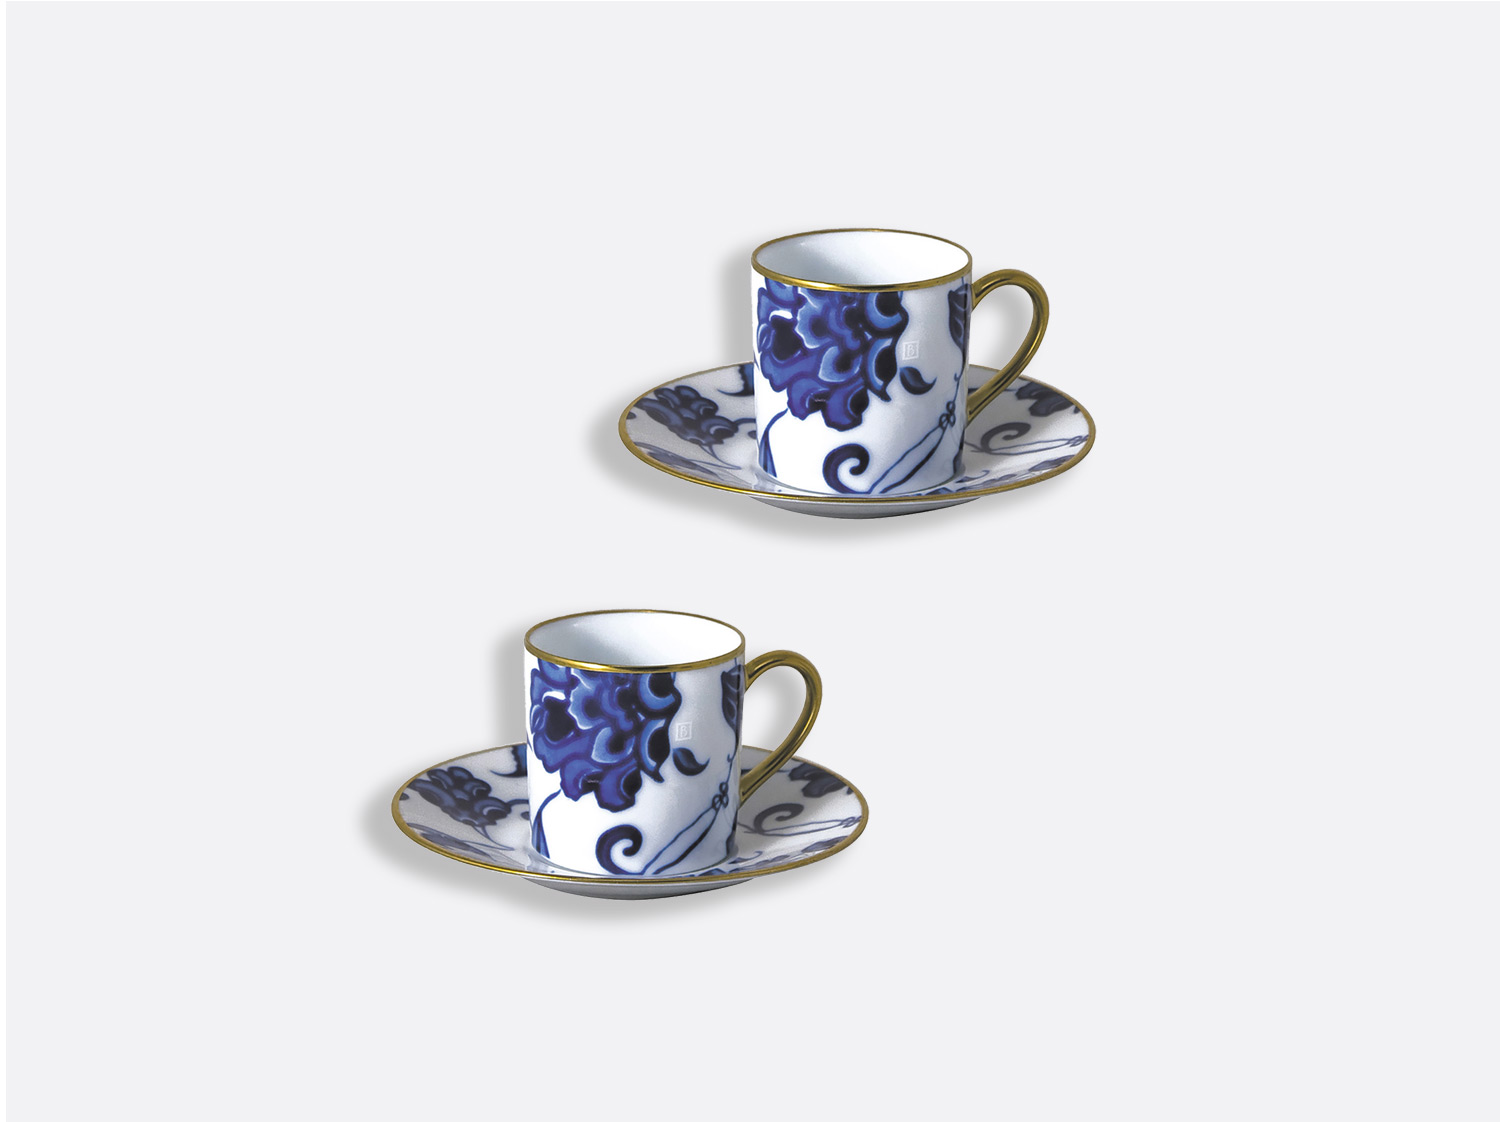 China Espresso cup and saucer gift box - 3 oz - Set of 2 of the collection Prince bleu | Bernardaud